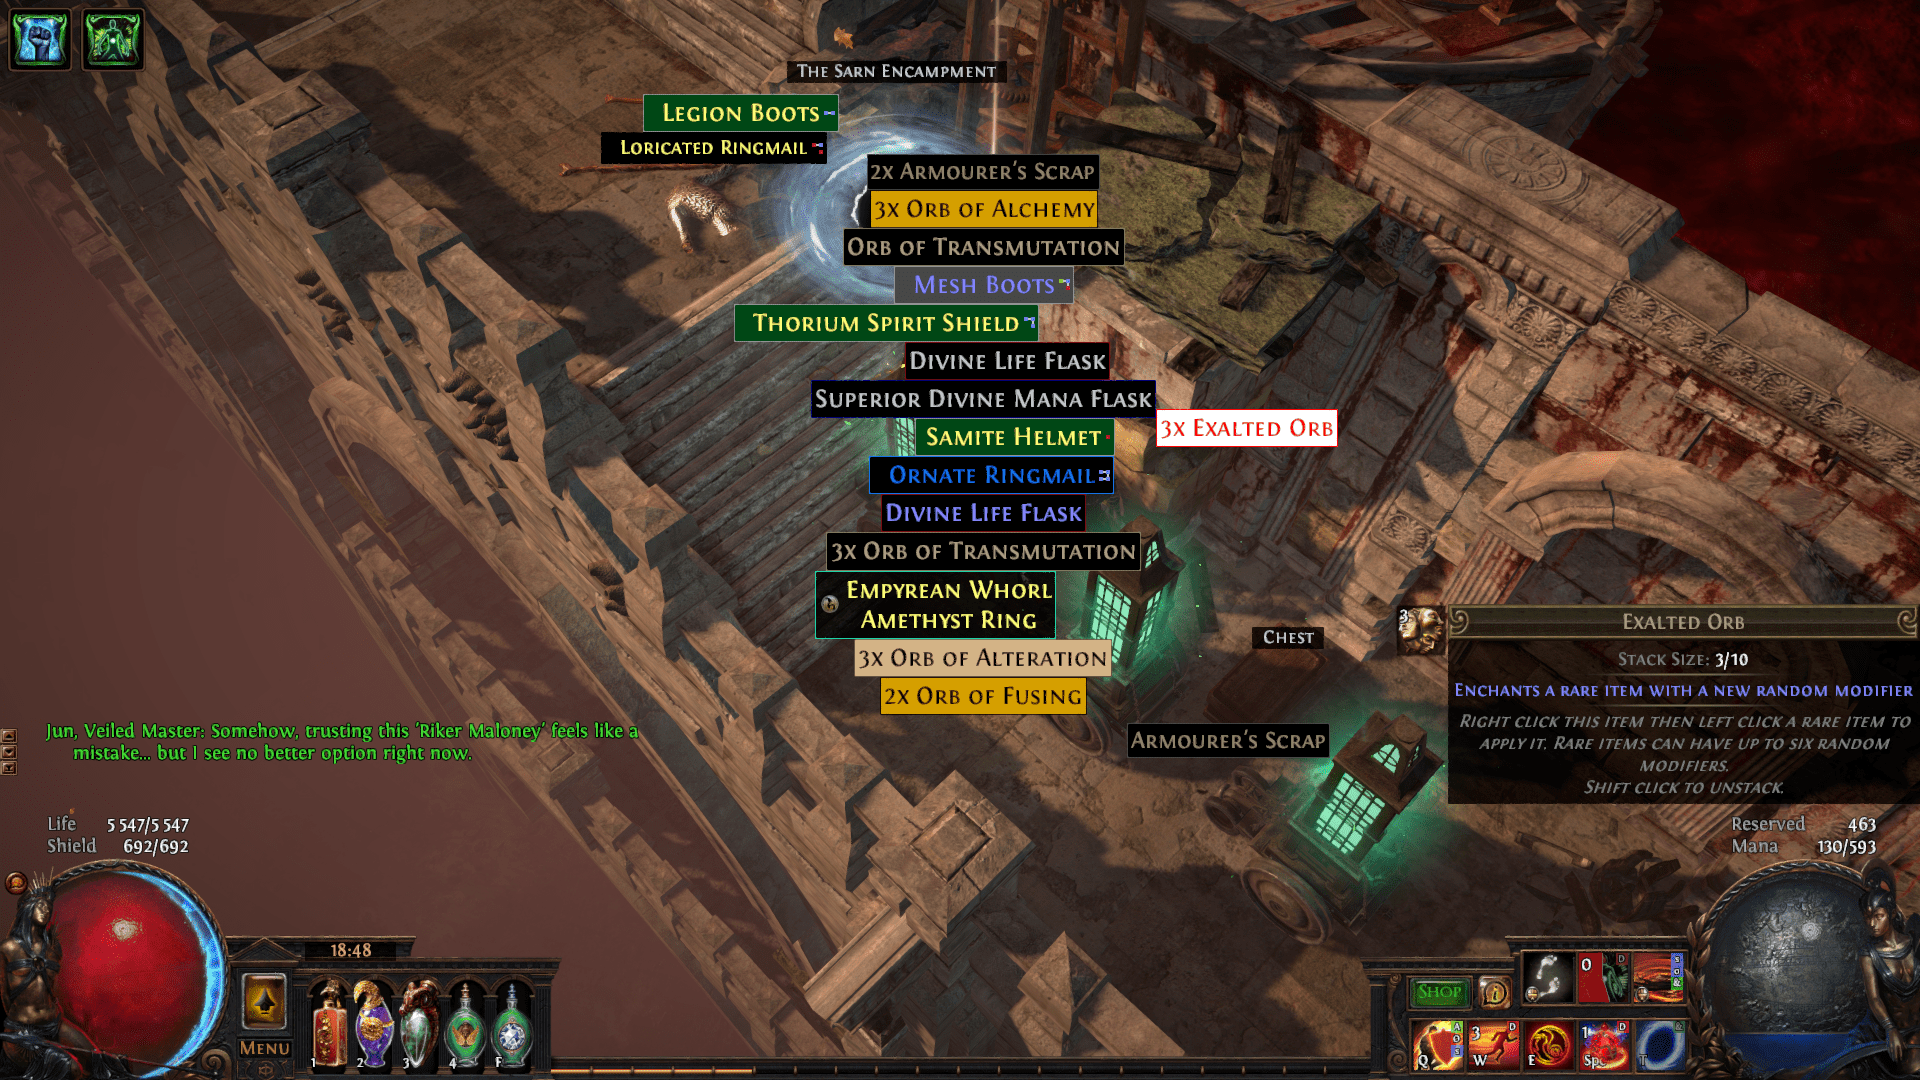 my first exalt this